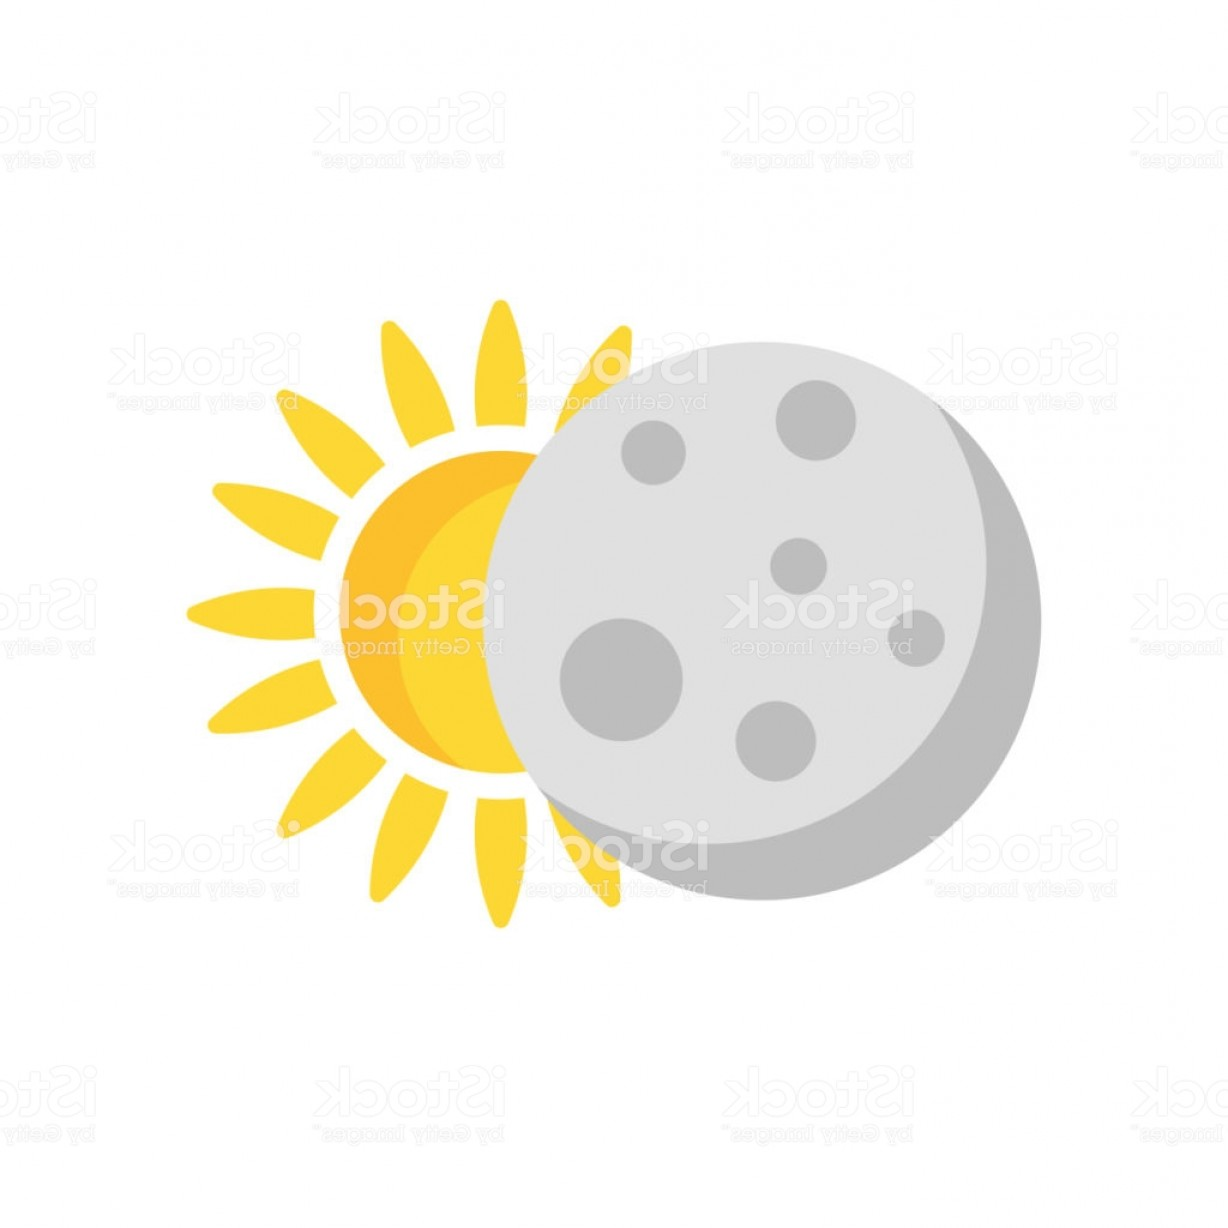 Whitew Eclipse Vector: Eclipse Icon Vector Sign And Symbol Isolated On White Background Eclipse Logo Gm